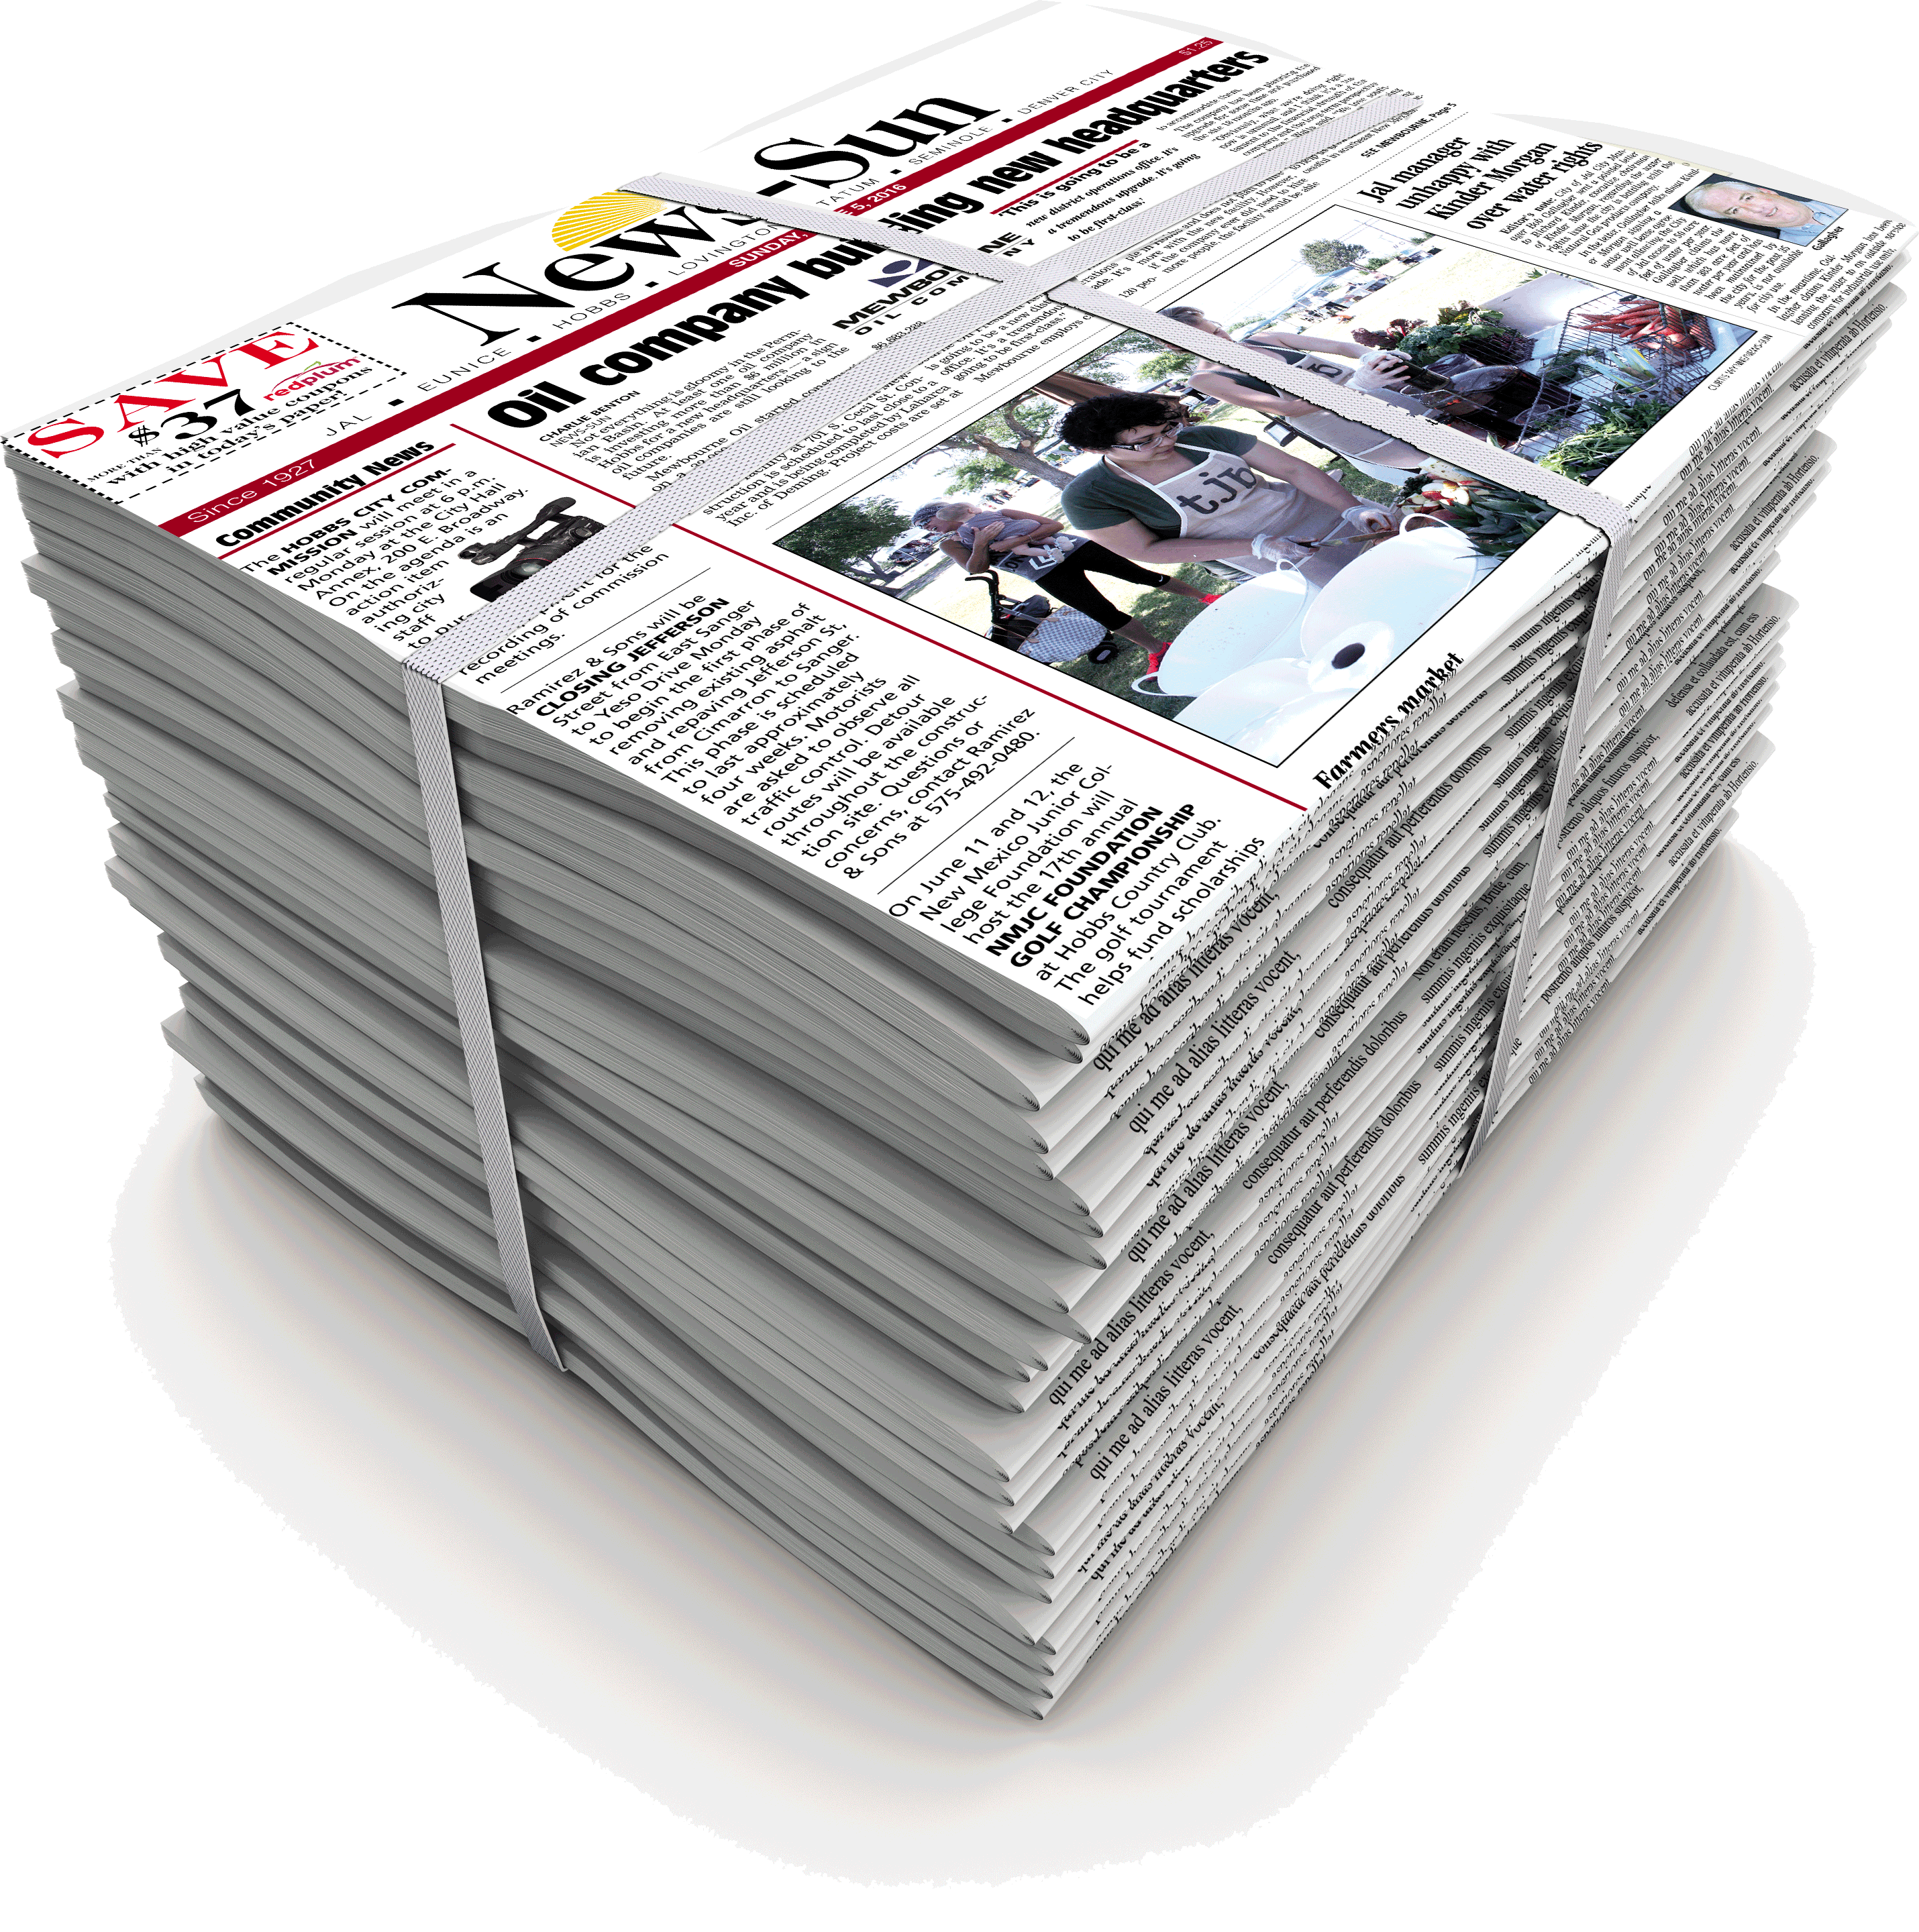 Png news papers. Home print delivery daily